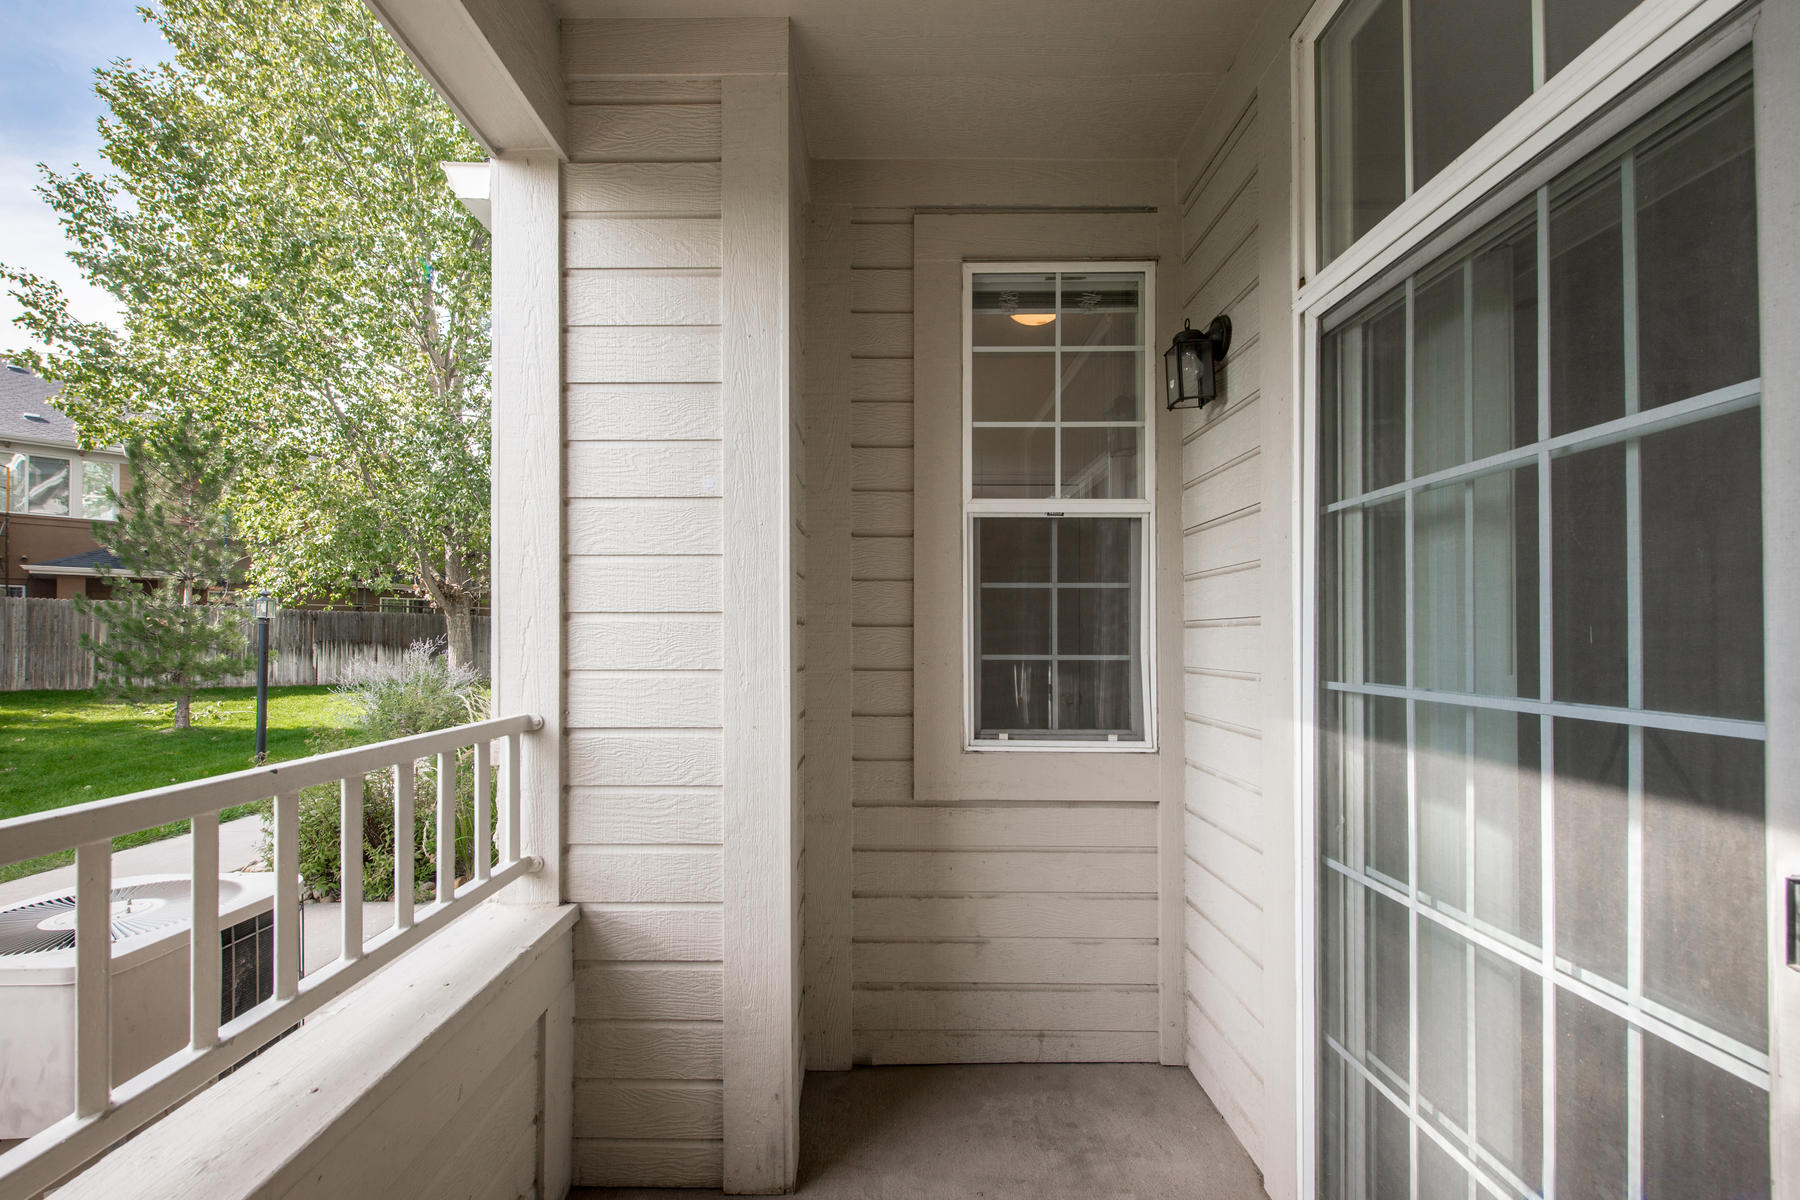 Additional photo for property listing at Lovely Copperstone Condominium 9468 E Florida Ave #1042 Denver, Colorado 80247 United States